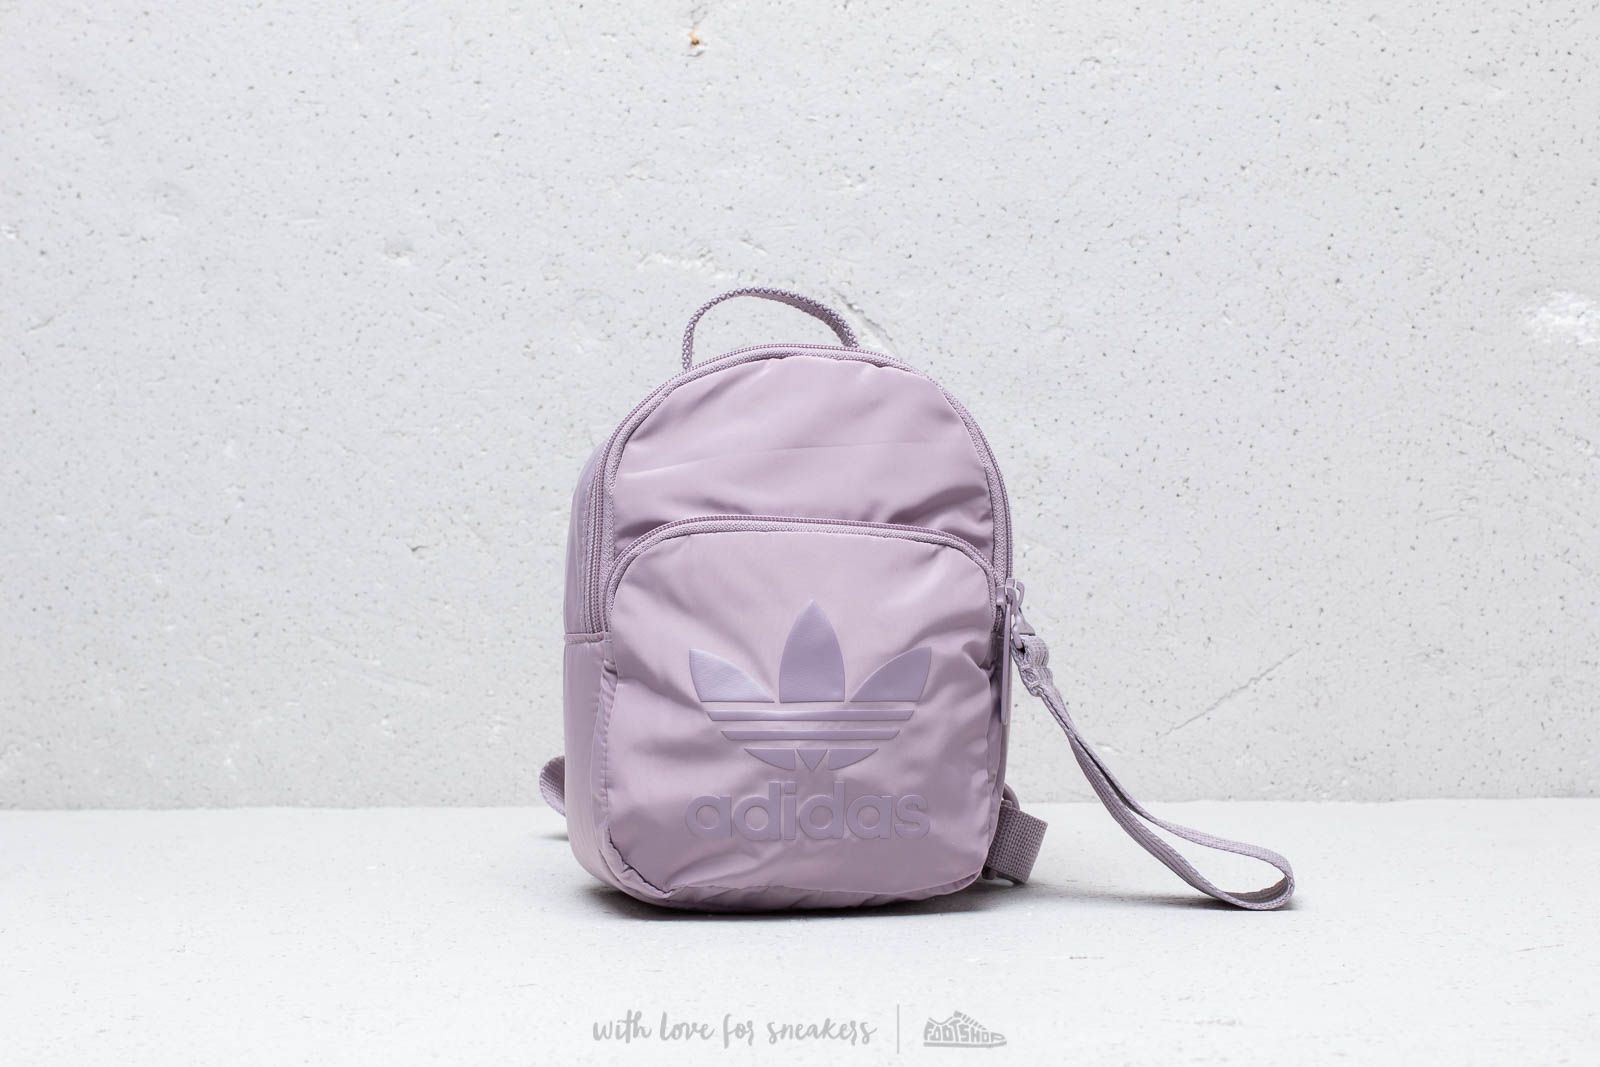 adidas Classic Mini Backpack Soft Vision